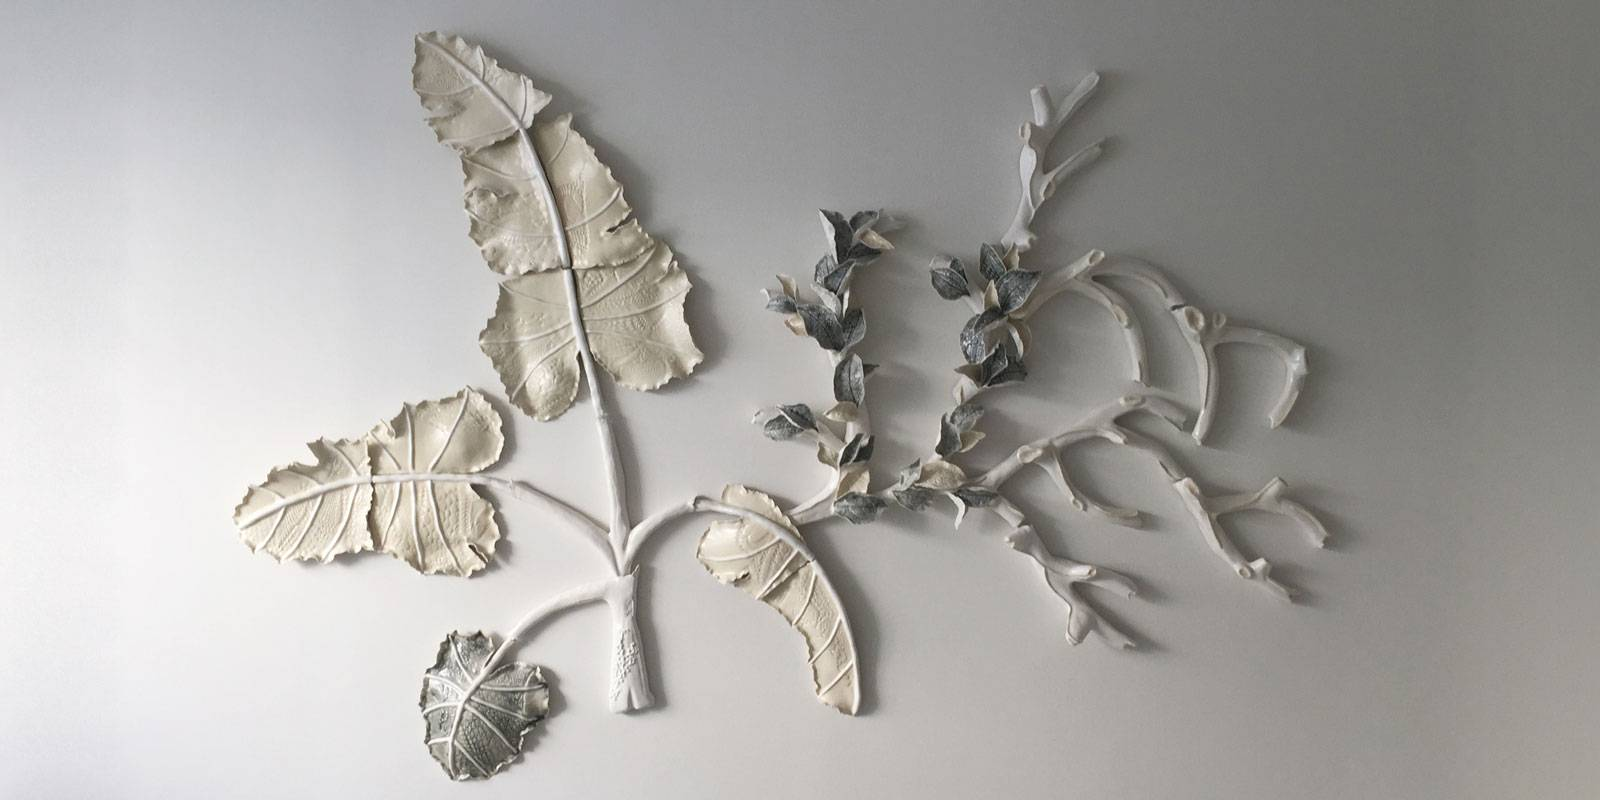 Porcelain Mural Artwork